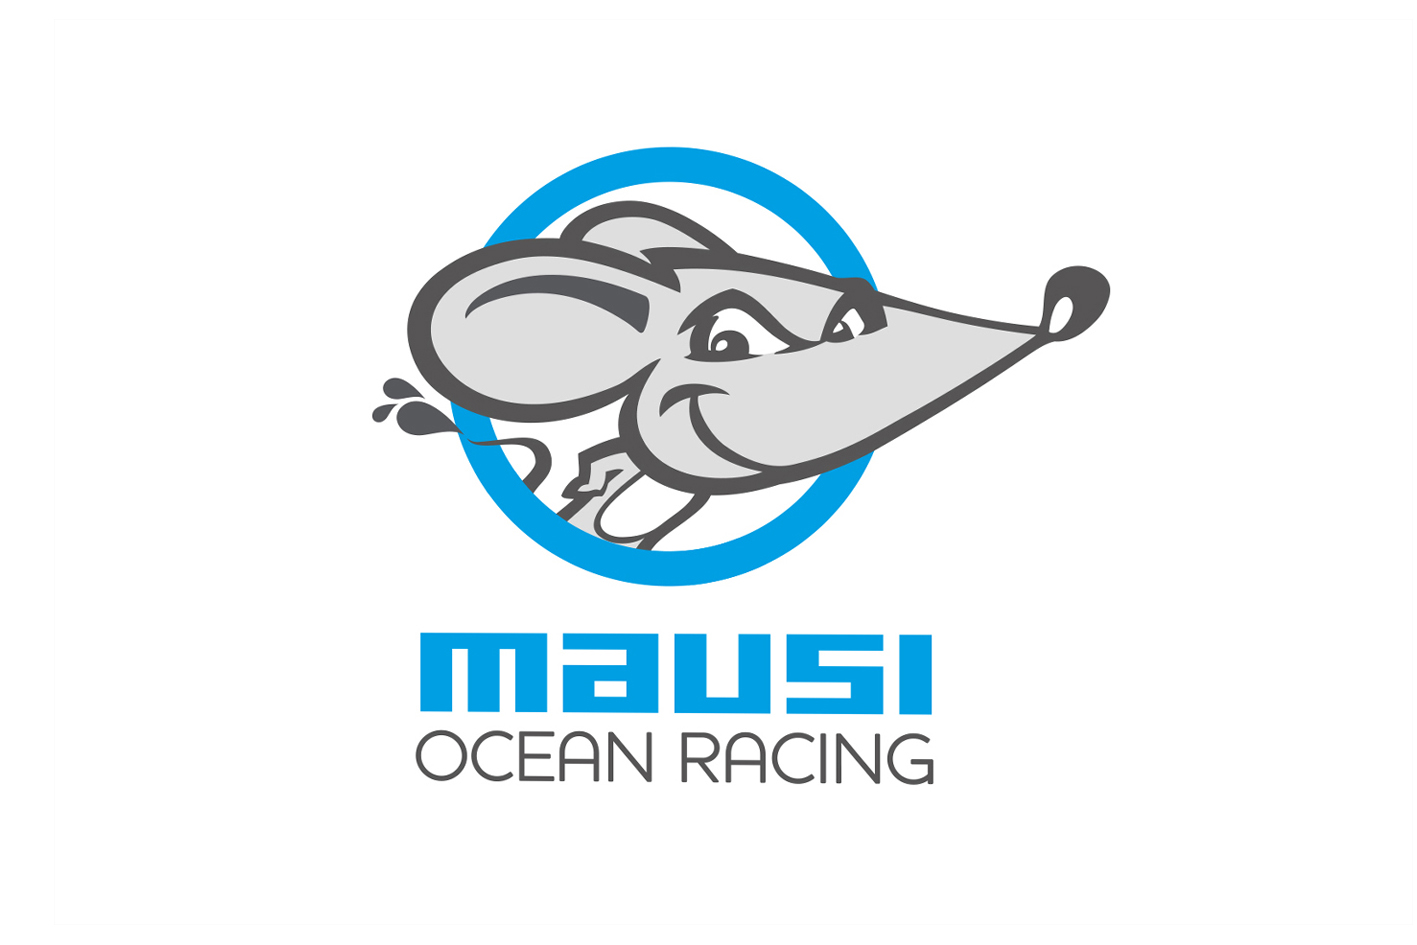 Mausi Ocean Racing  Branding for a global ocean racing company based in Palma, Mallorca. Character design in association with Chris Smedley at The Character Works.